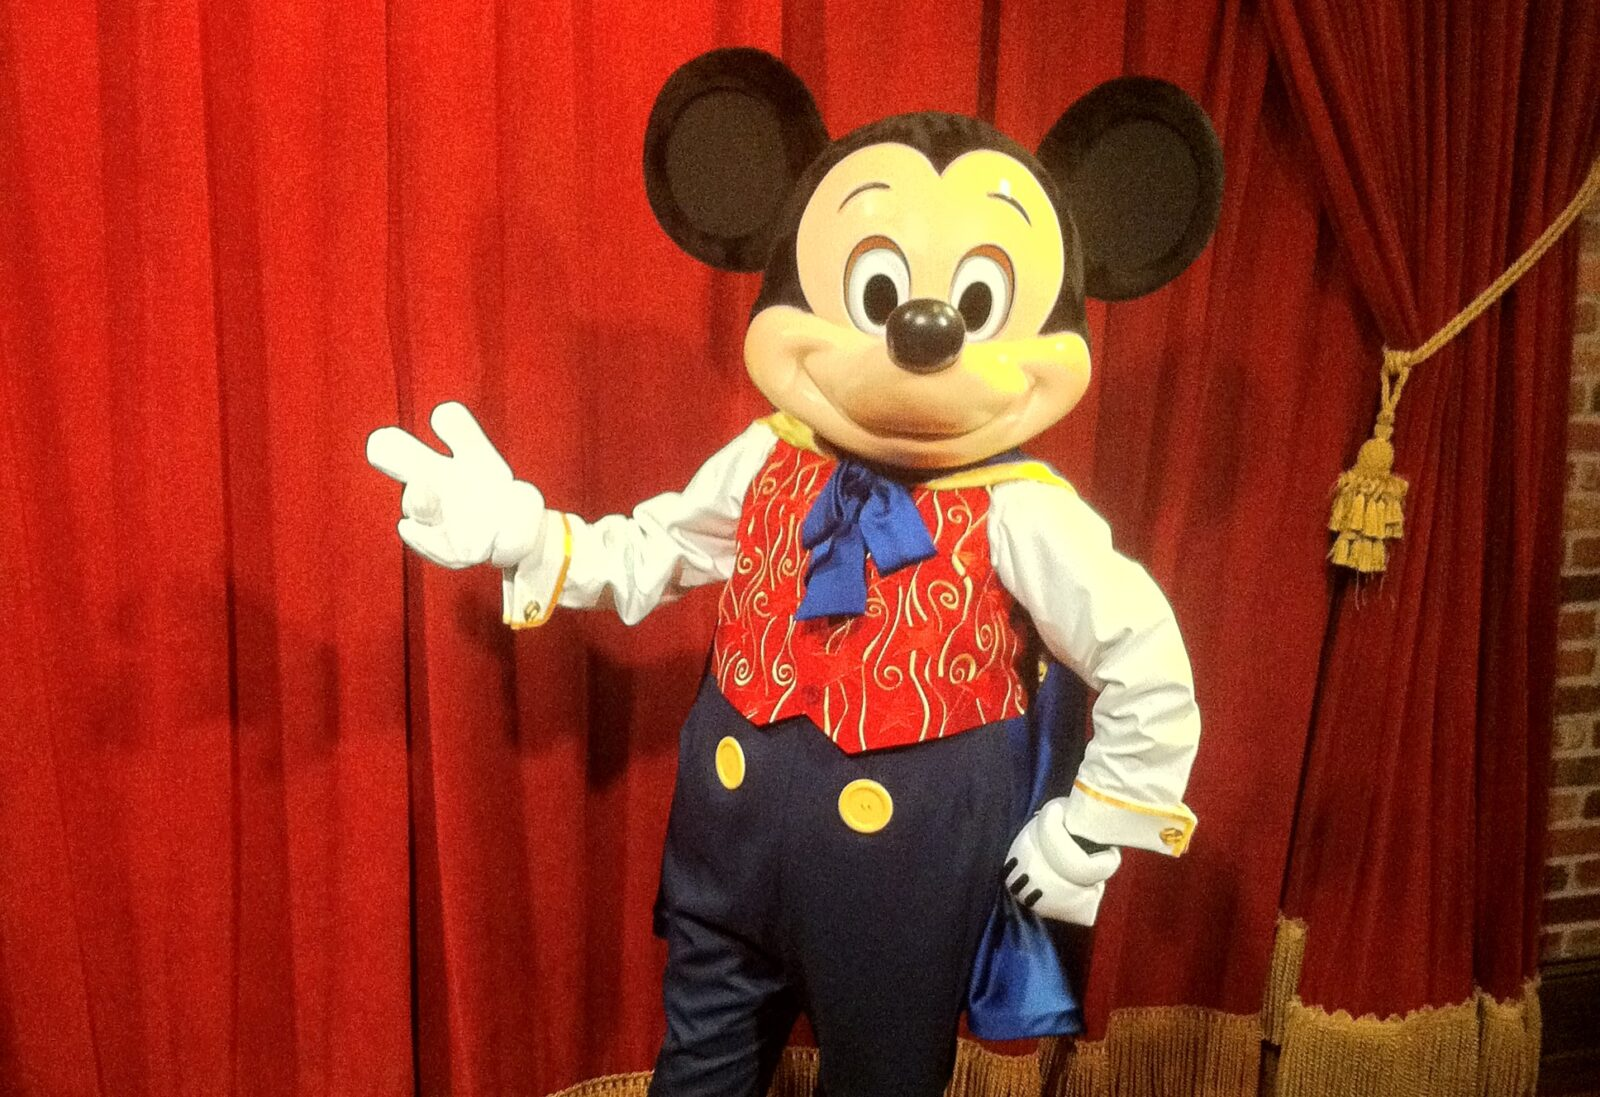 Talking magician mickey now meeting guests daily at magic kingdom talking magician mickey now meeting guests daily at magic kingdom attractions magazine m4hsunfo Images